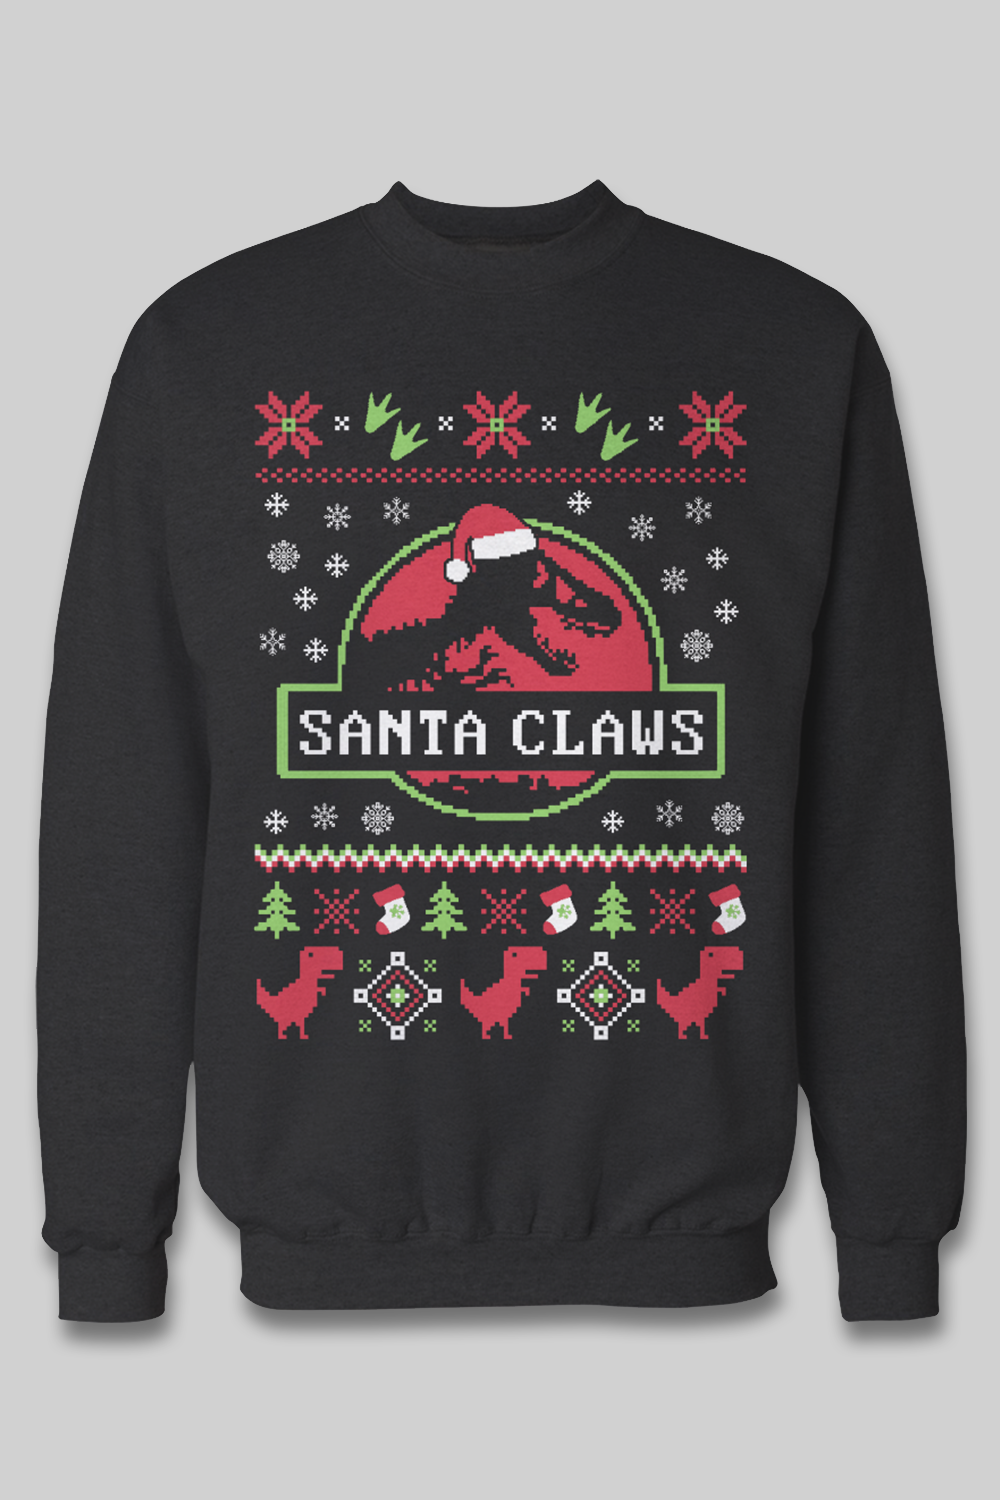 The best gift for Jurassic Park fans! I need this ugly christmas ...